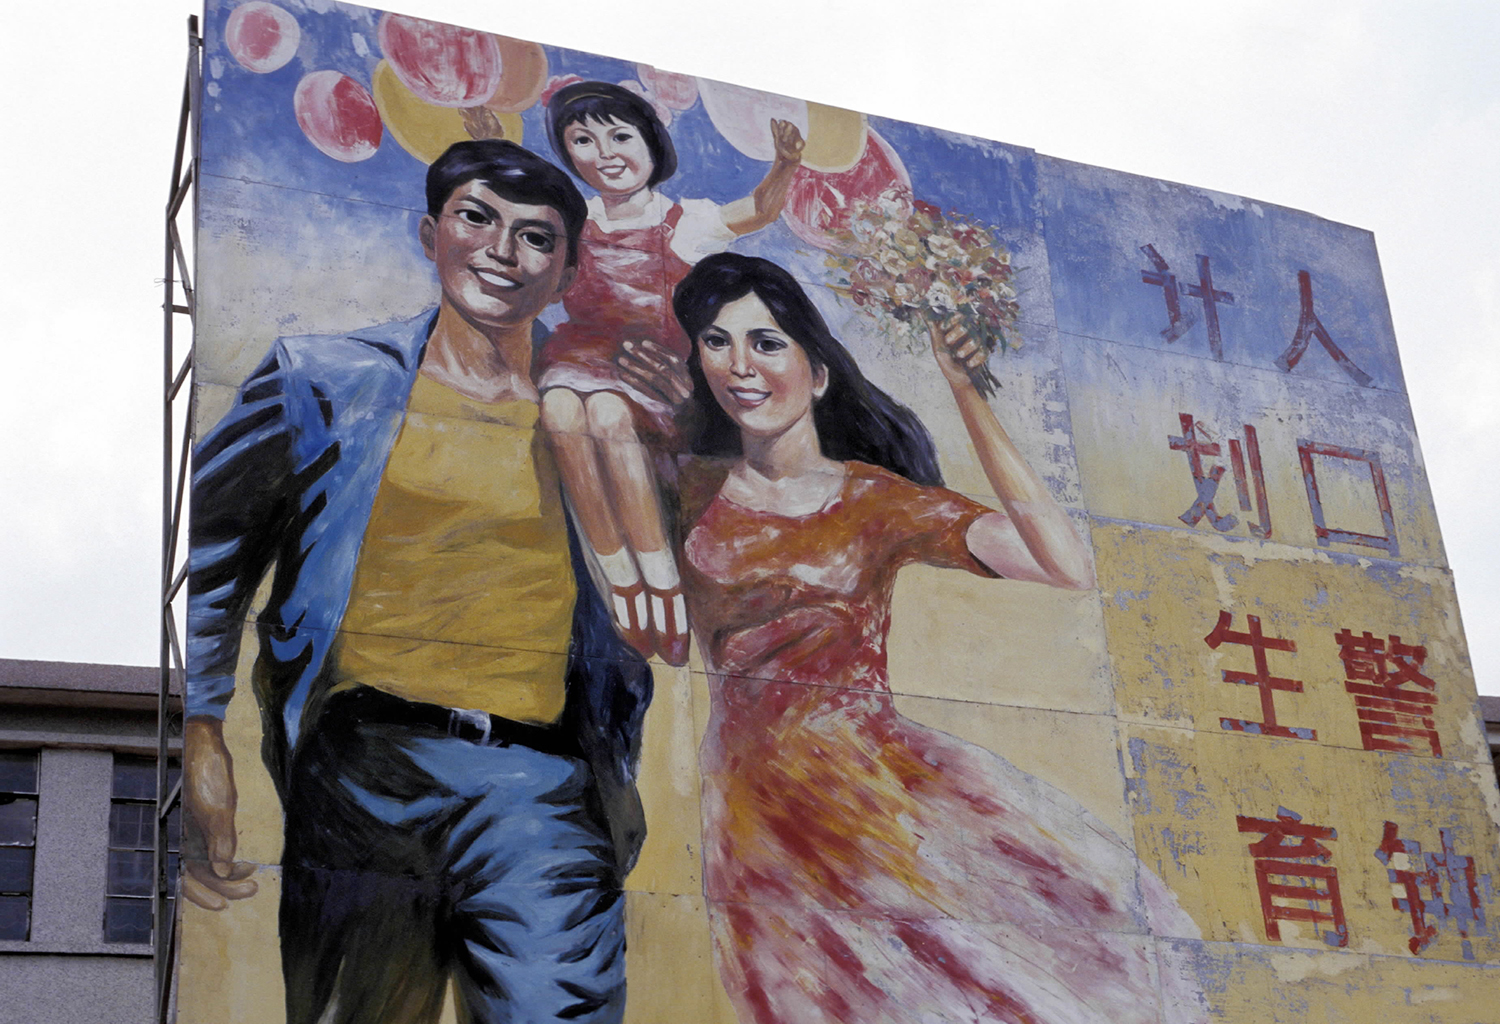 A mural promotes the one-child policy in China's Yunnan province.